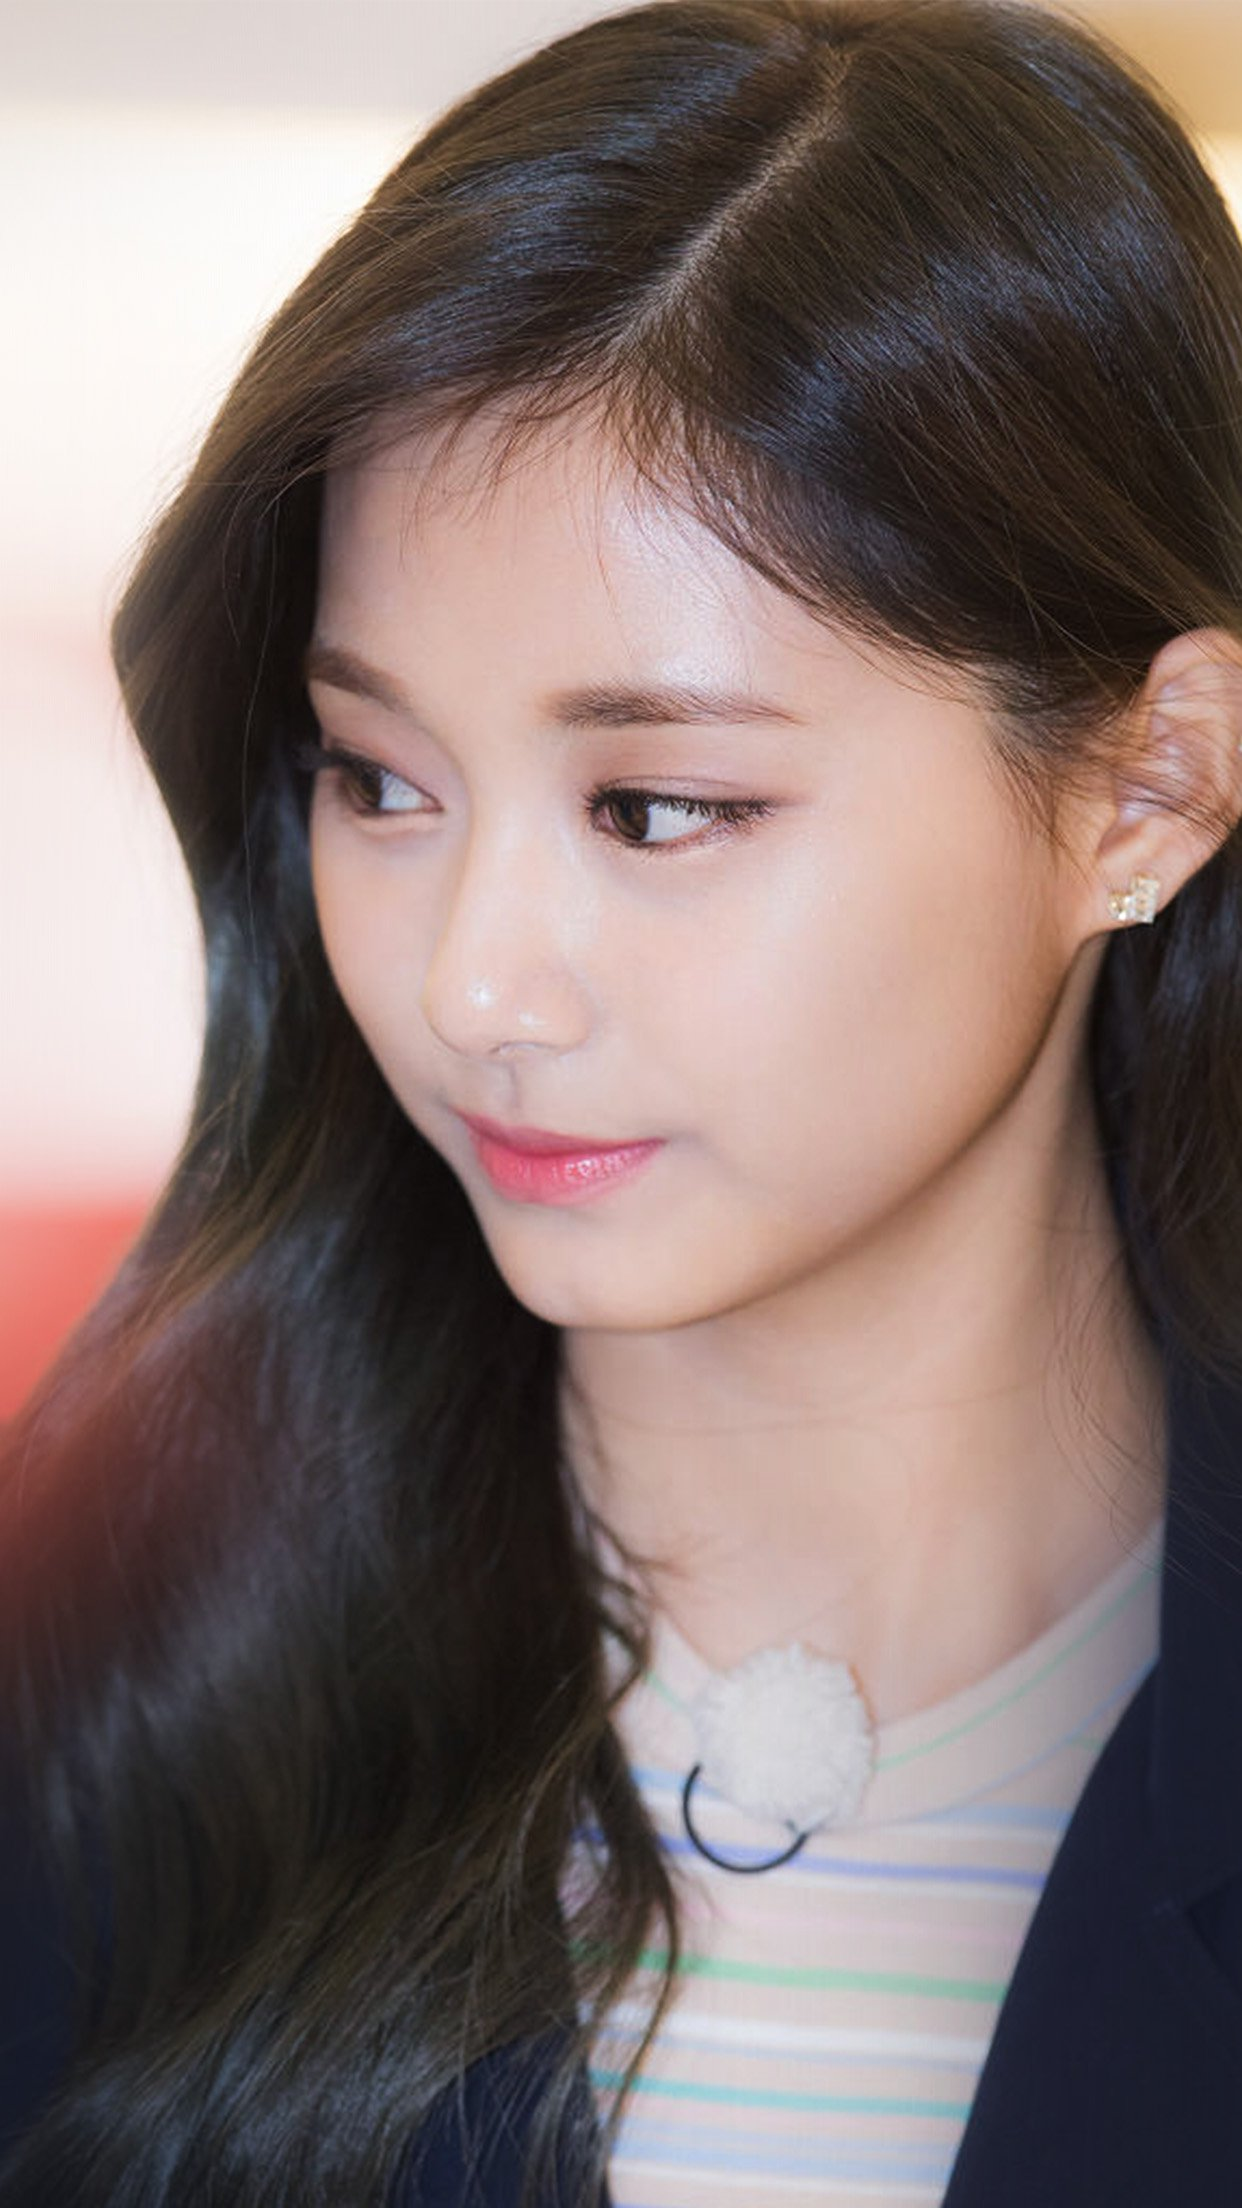 Kpop Tzuyu Twice Girl Cute Android Wallpaper Android Hd